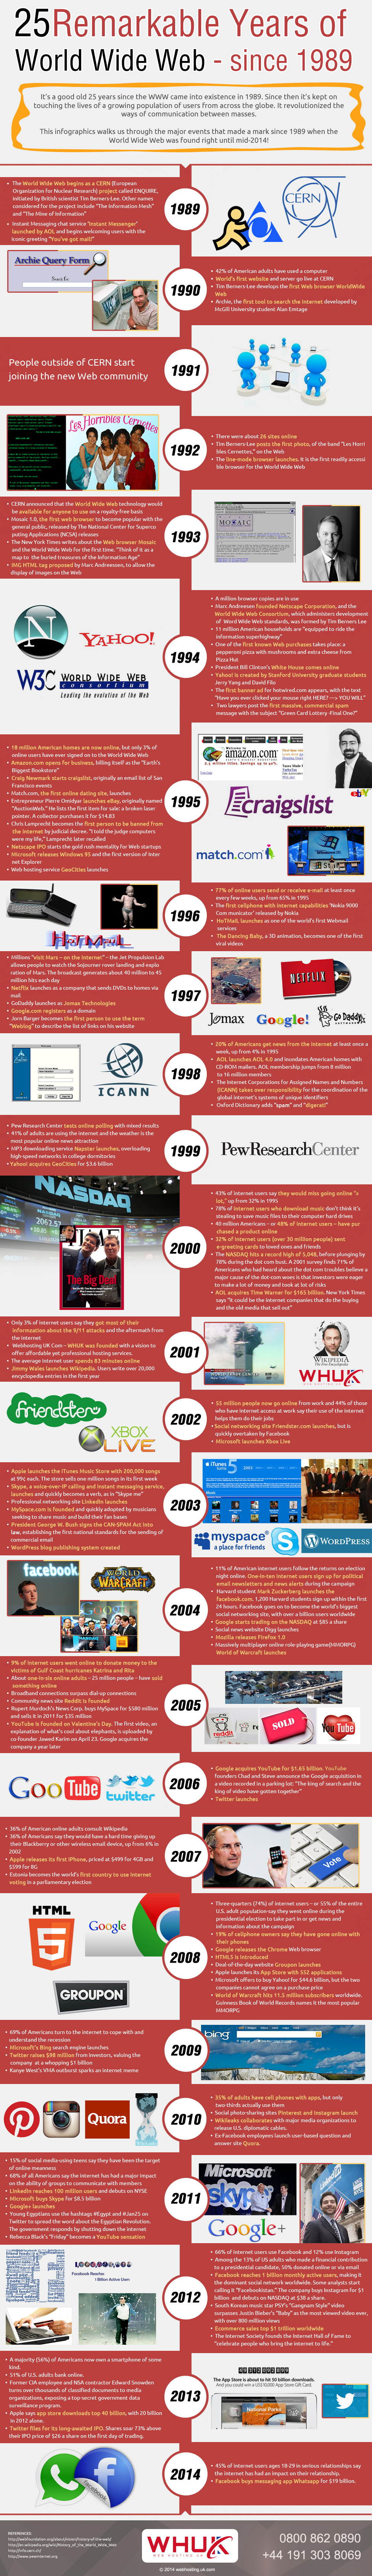 25 Remarkable Years of the World Wide Web - The Journey Key-Events-from-The-History-of-Web-Infographics. It's a good old 25 years since the WWW came into existence in 1989. Since then it's kept on touching the lives of a growing population of netizens from across the globe. It revolutionized the ways of communication between masses.This very interesting infographics walks us through the major events in WWW during the 25 years until mid-2014.